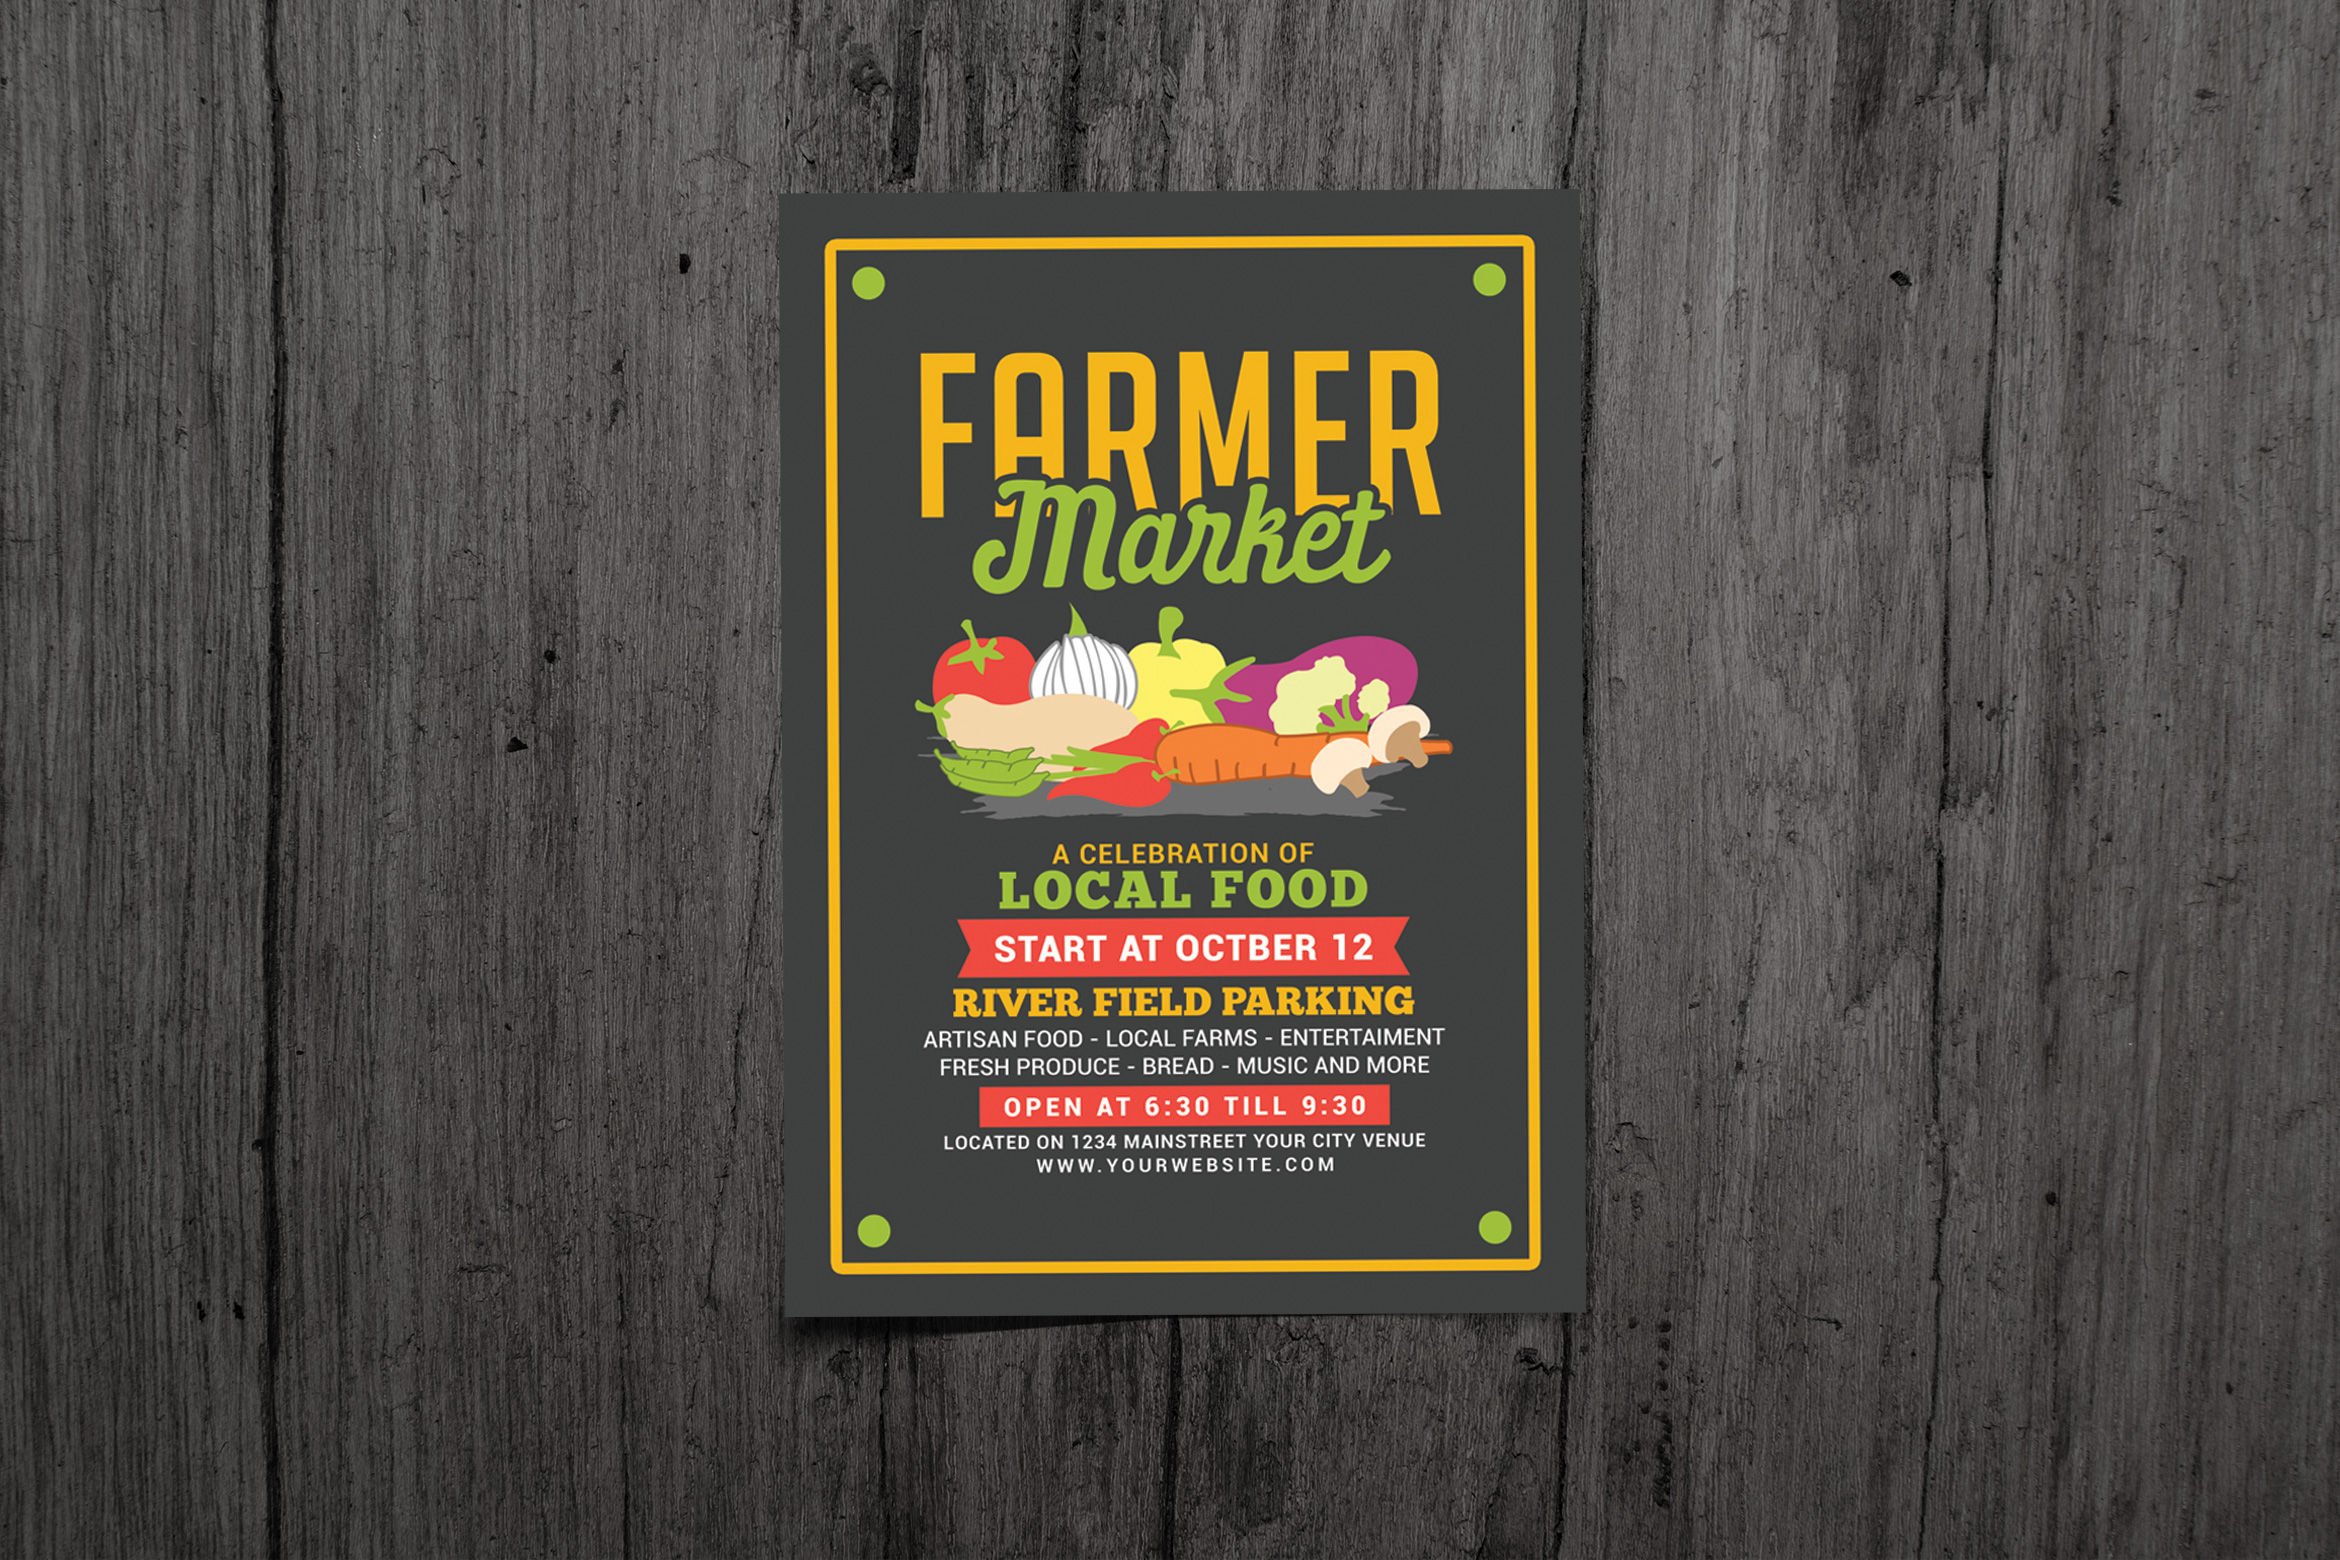 Download Free Farmer Food Market Flyer Graphic By Muhamadiqbalhidayat Creative Fabrica for Cricut Explore, Silhouette and other cutting machines.